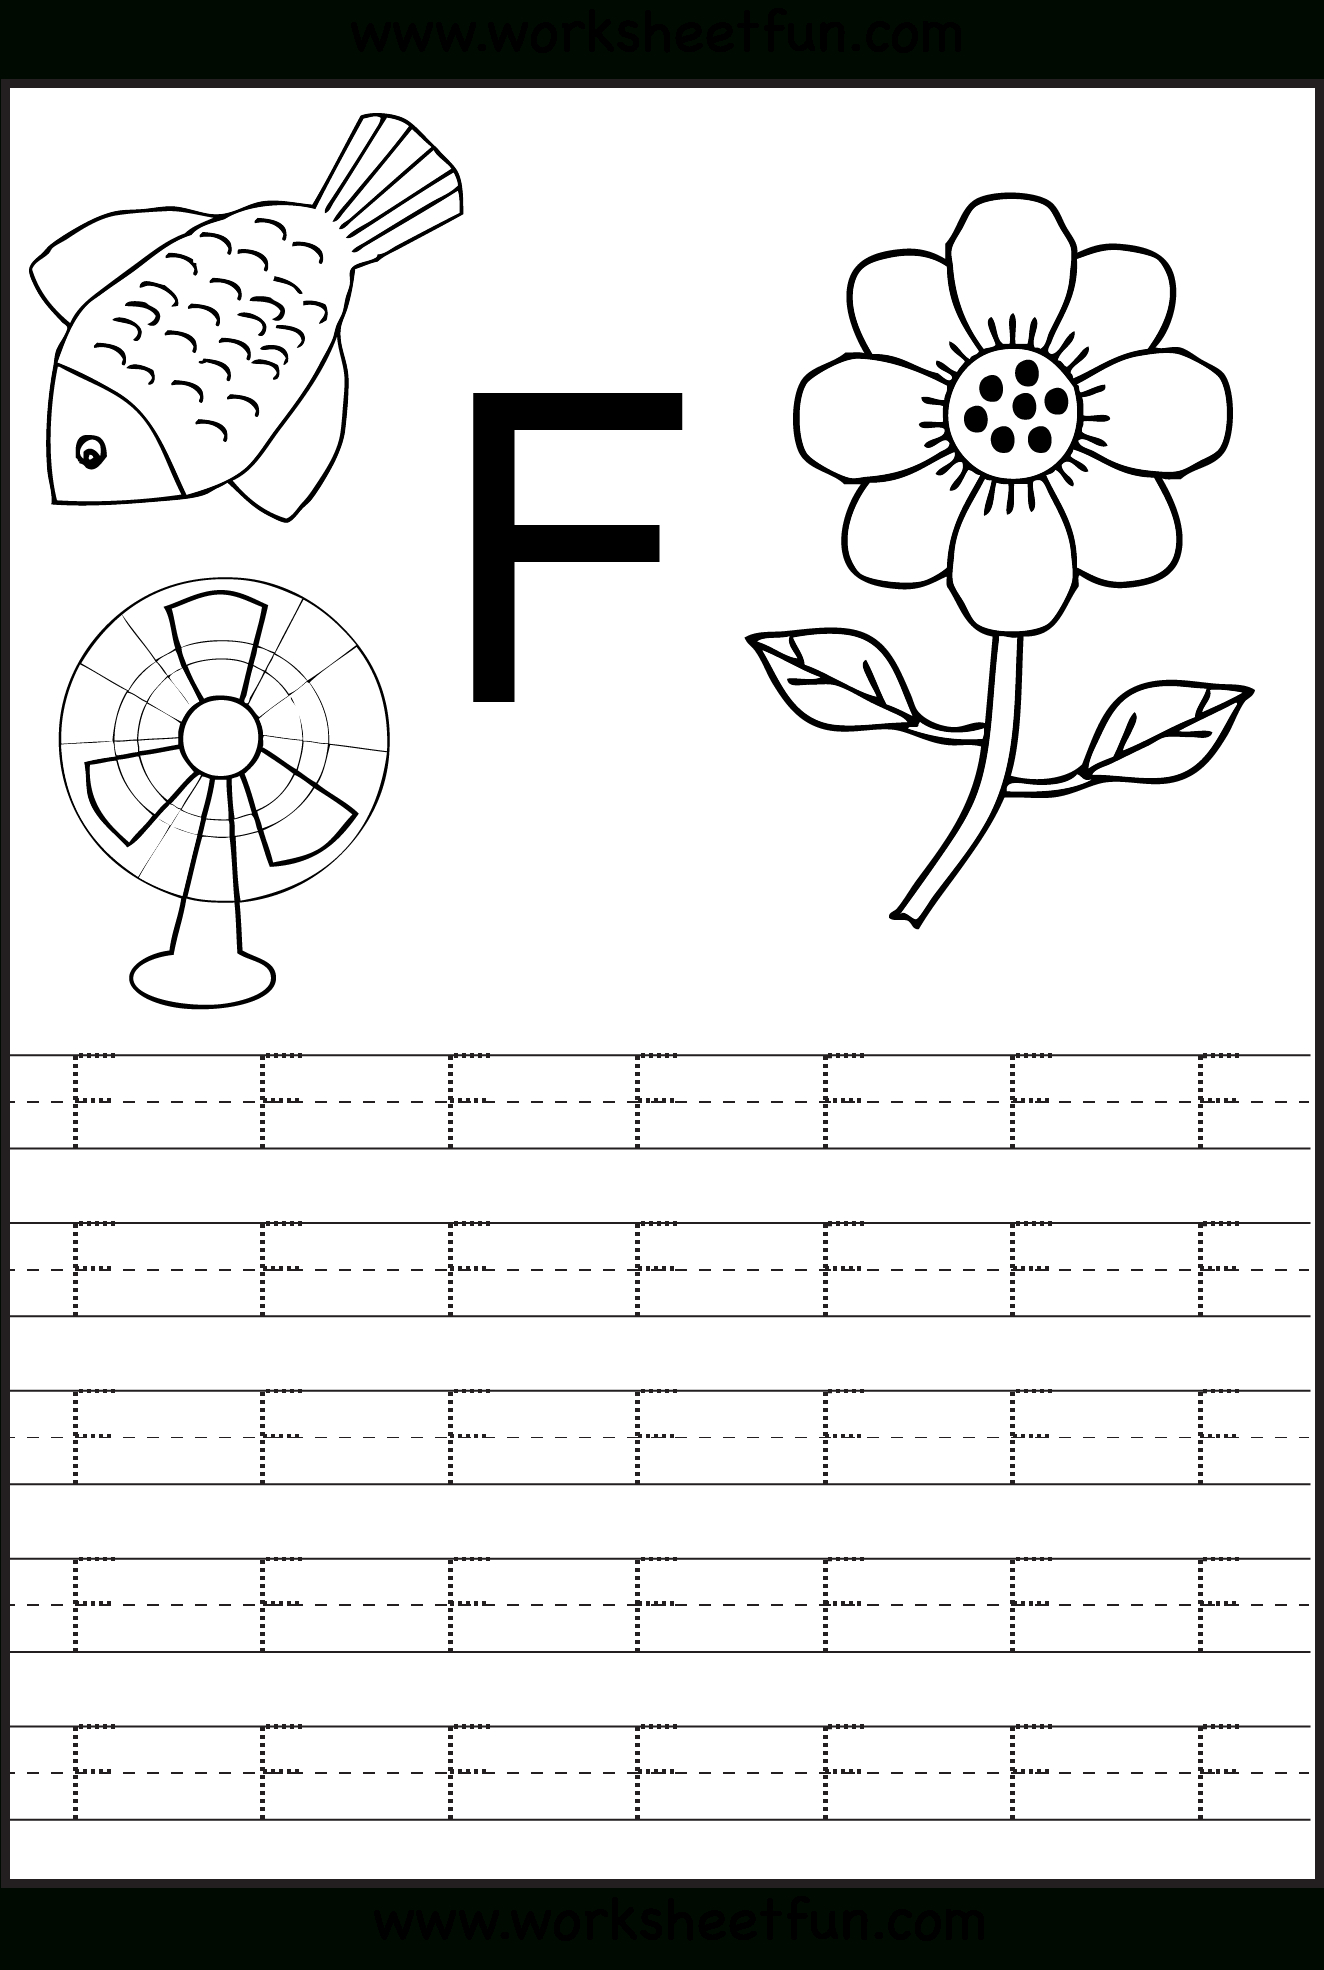 Letter F Worksheets | H3Dwallpapers - High Definition Free for Letter F Worksheets Pinterest